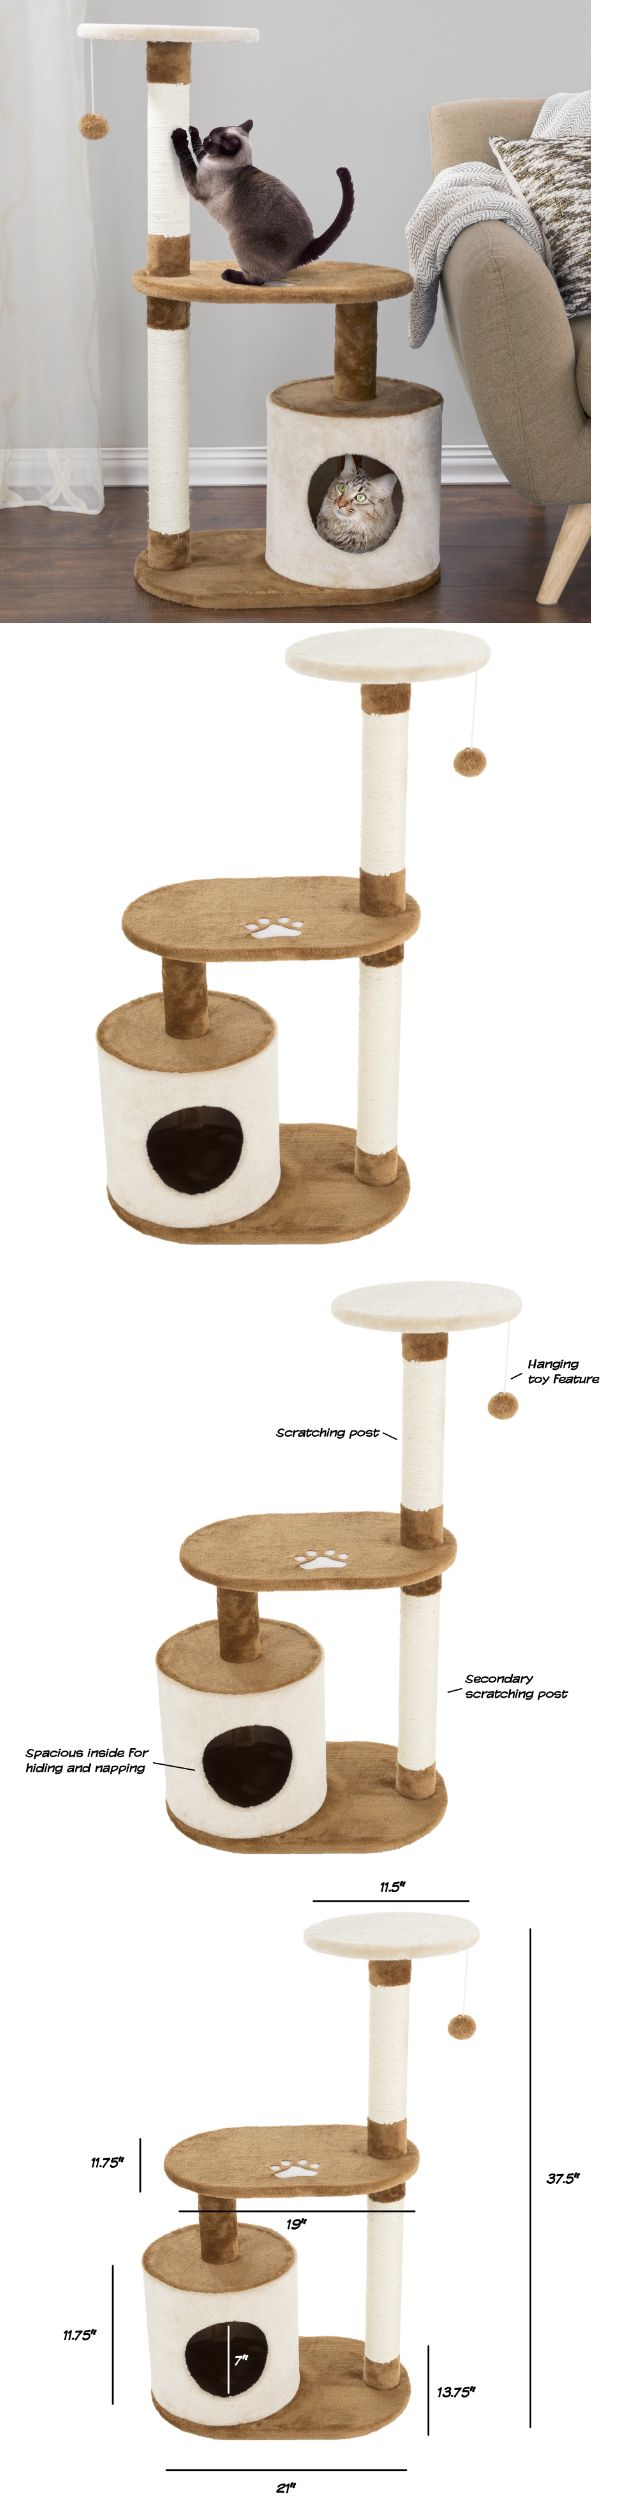 Animals Cats: Best Cat Scratching Post Tree Tower Large Condo Play House Furniture Kitten Toys -> BUY IT NOW ONLY: $49.99 on eBay!